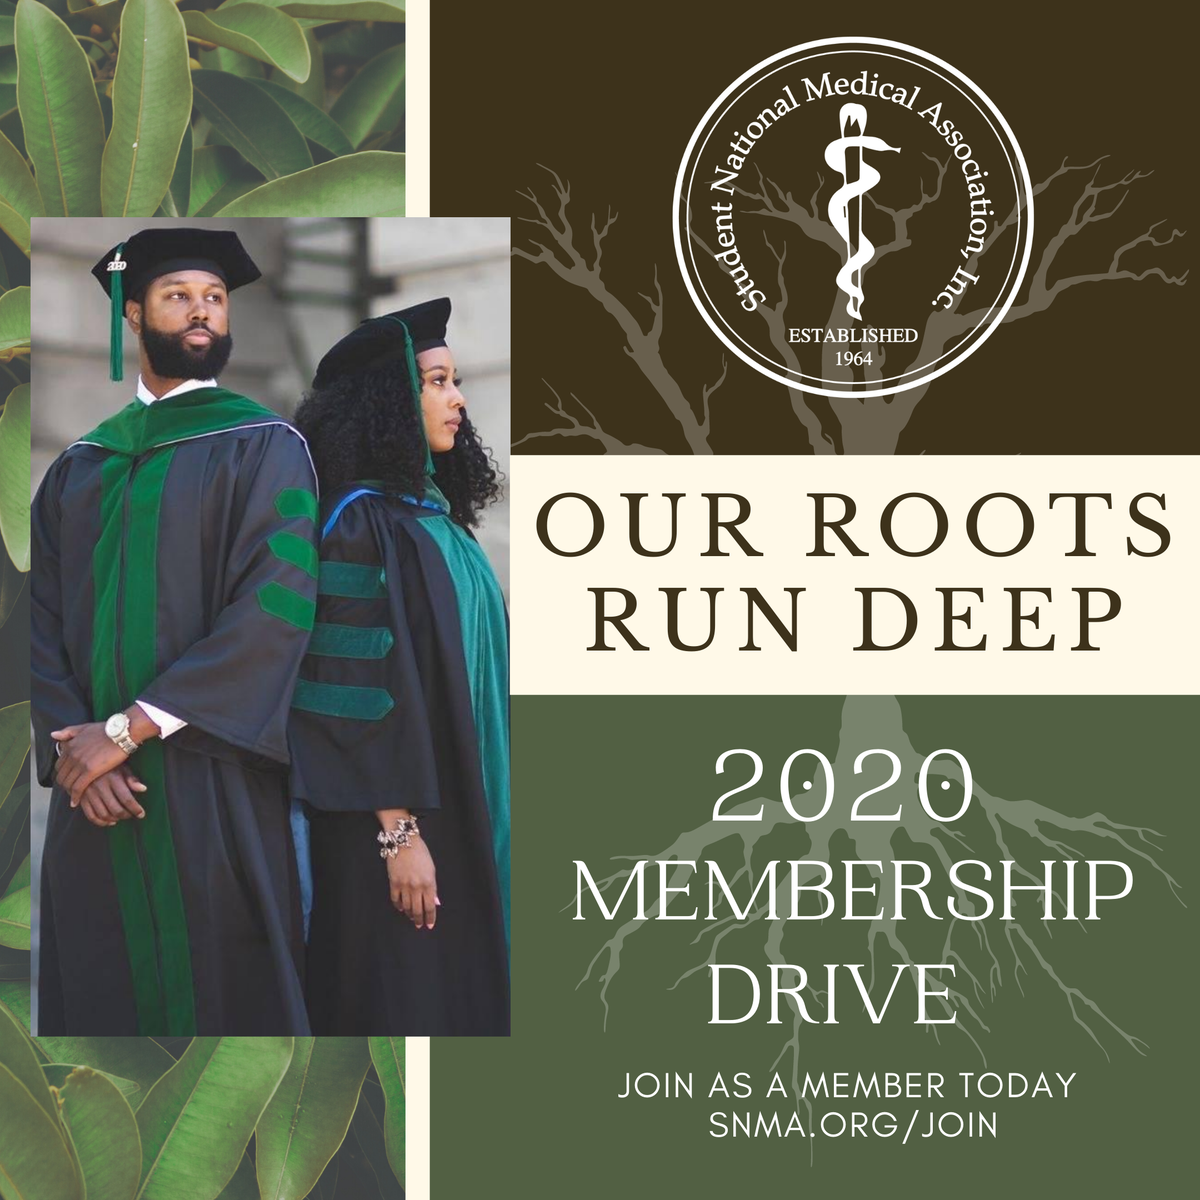 Membership Drive 2020 is officially here! Our roots run deep! We have many exciting things in store. Visit snma.org/join to become a member today. #SNMAMembership2020 #OurRootsRunDeep